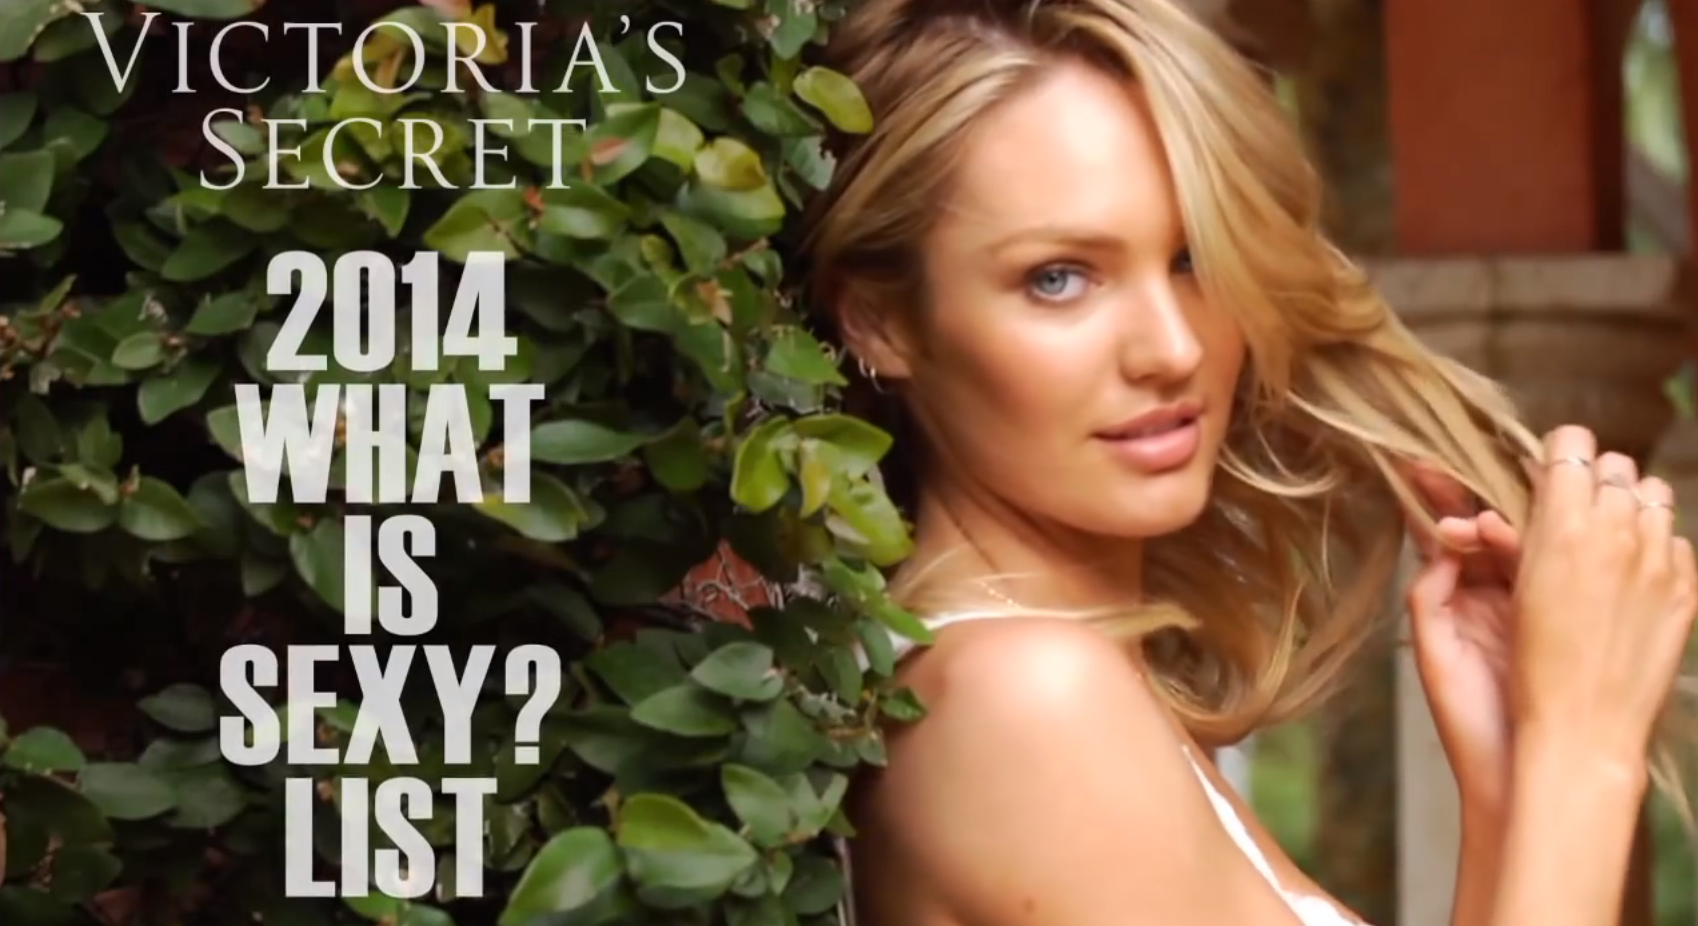 Victoria's Secret 2014 'What Is Sexy' list released